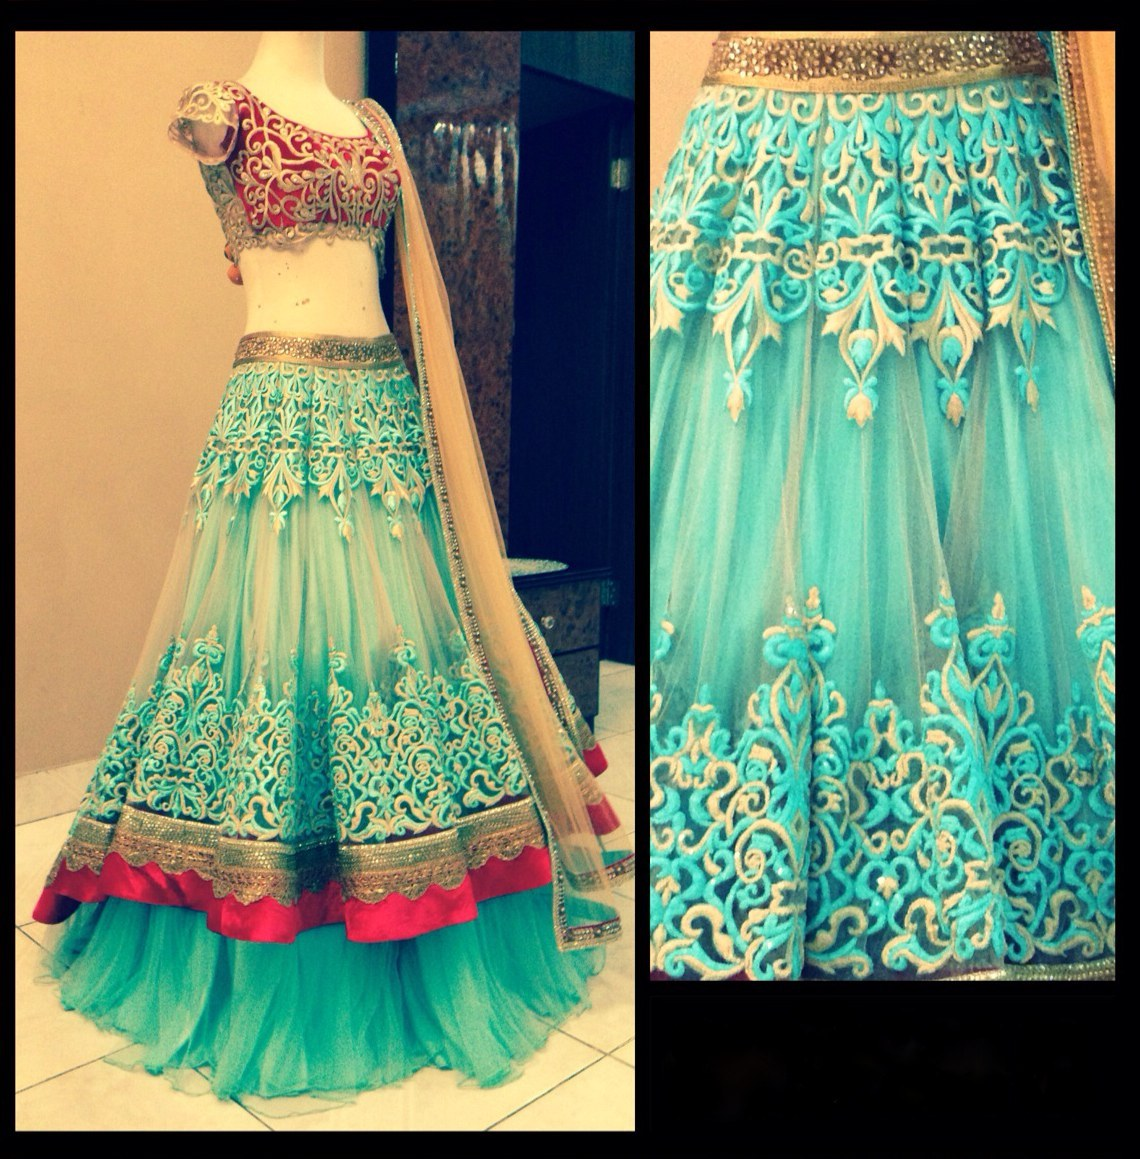 One piece dresses by manish malhotra